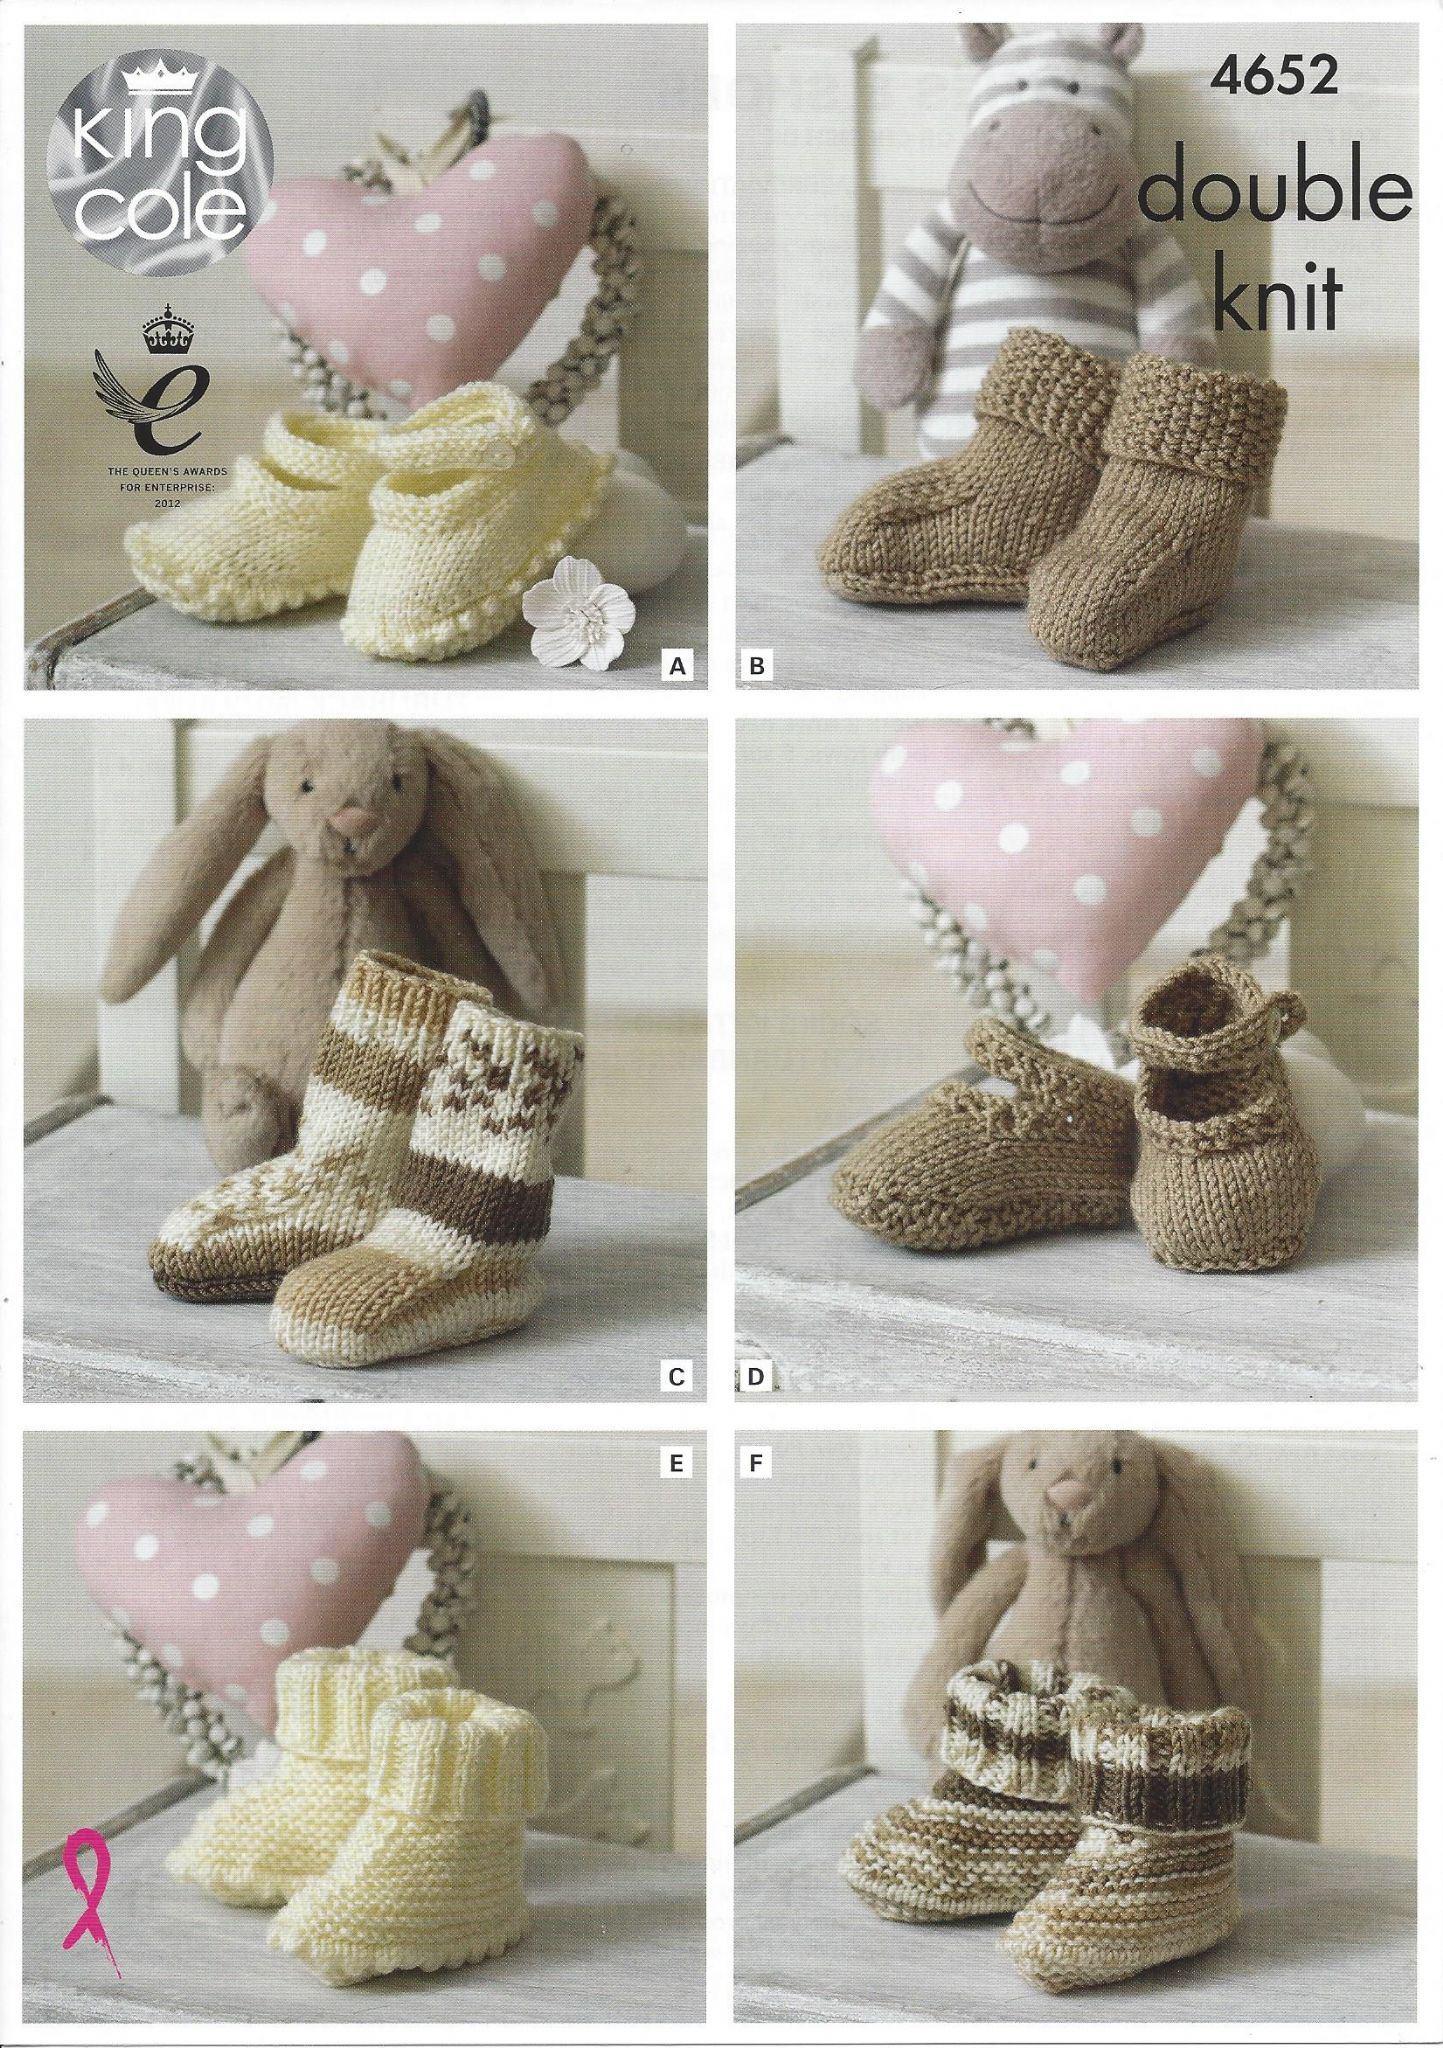 King Cole Baby DK Knitting Pattern - 4652 Socks Booties ...